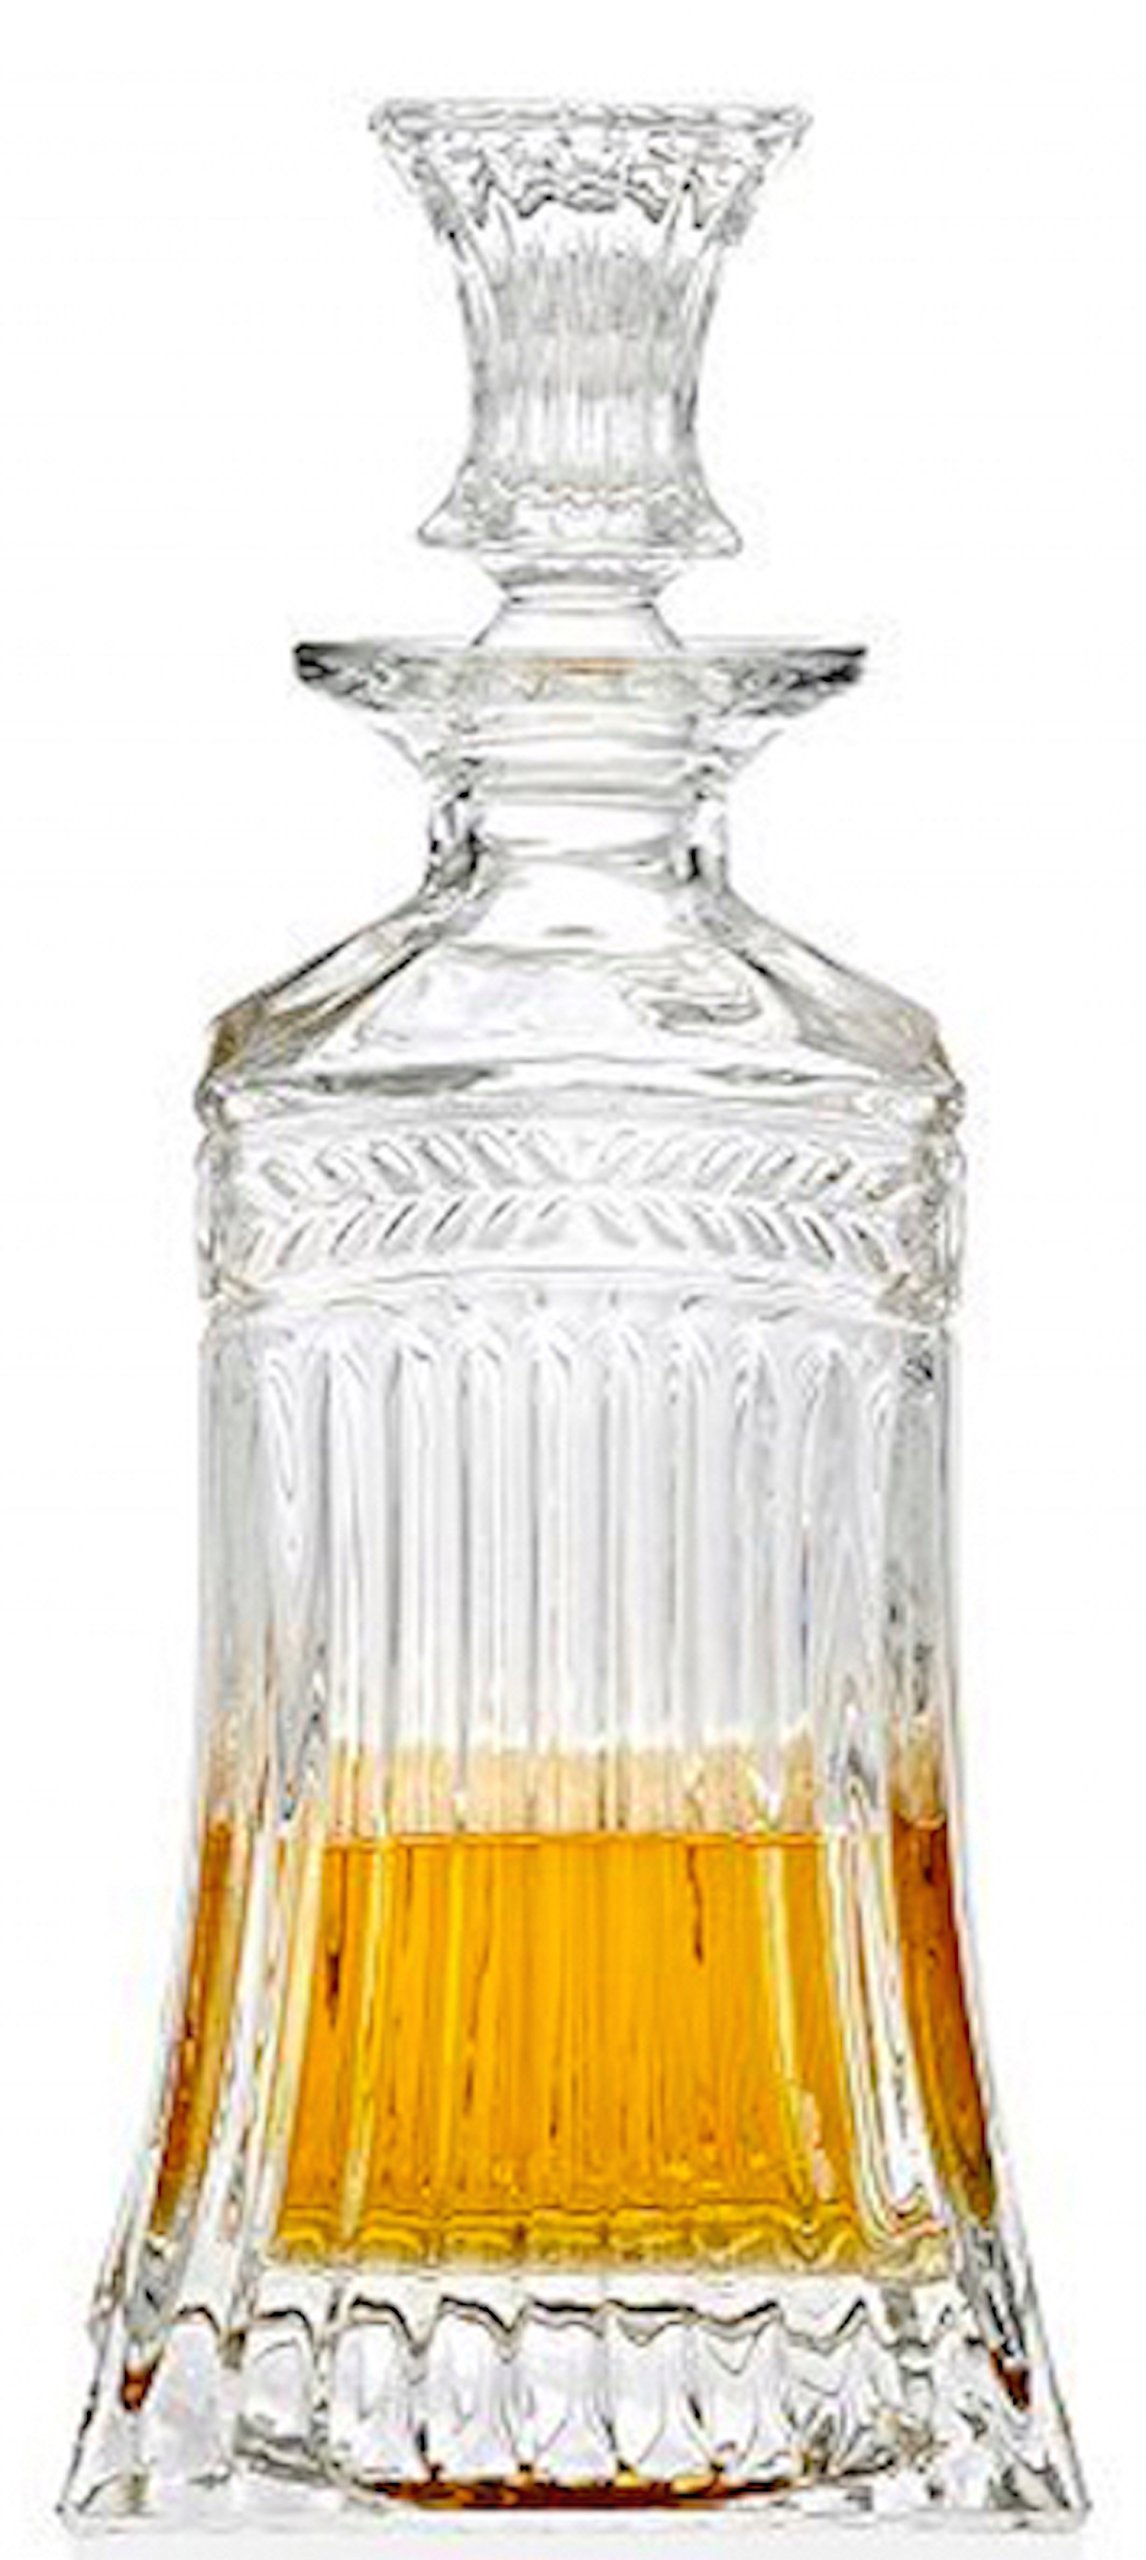 Circleware Empire Elegant Liquor Whiskey Glass Decanter with Square Stopper, Kitchen Drinking Glassware Carafe Pitcher for Water, Wine, Liquor Beverage, Beer and Best Bar Barrel Dining Décor, 532ml